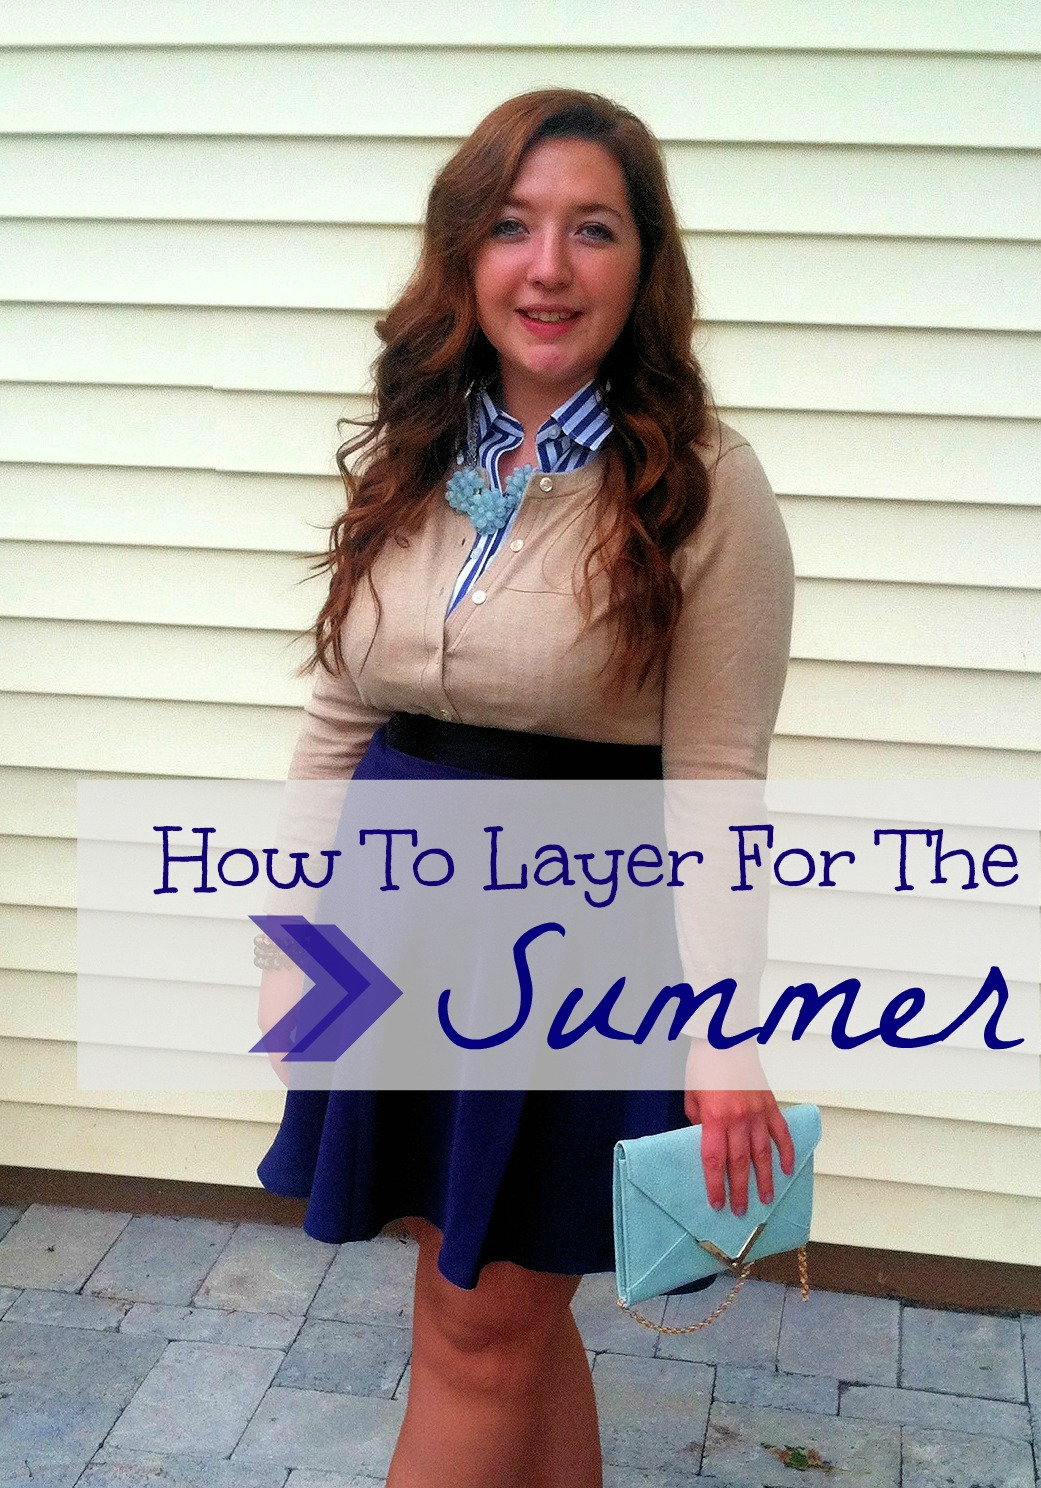 how-to-layer-for-the-summer, summer-layers, layering-for-summer, apt-9-beaded-flower-necklace-kohls, banana-republic-anna-cardigan-pebble, banana-republic-striped-sleeveless-no-iron-top